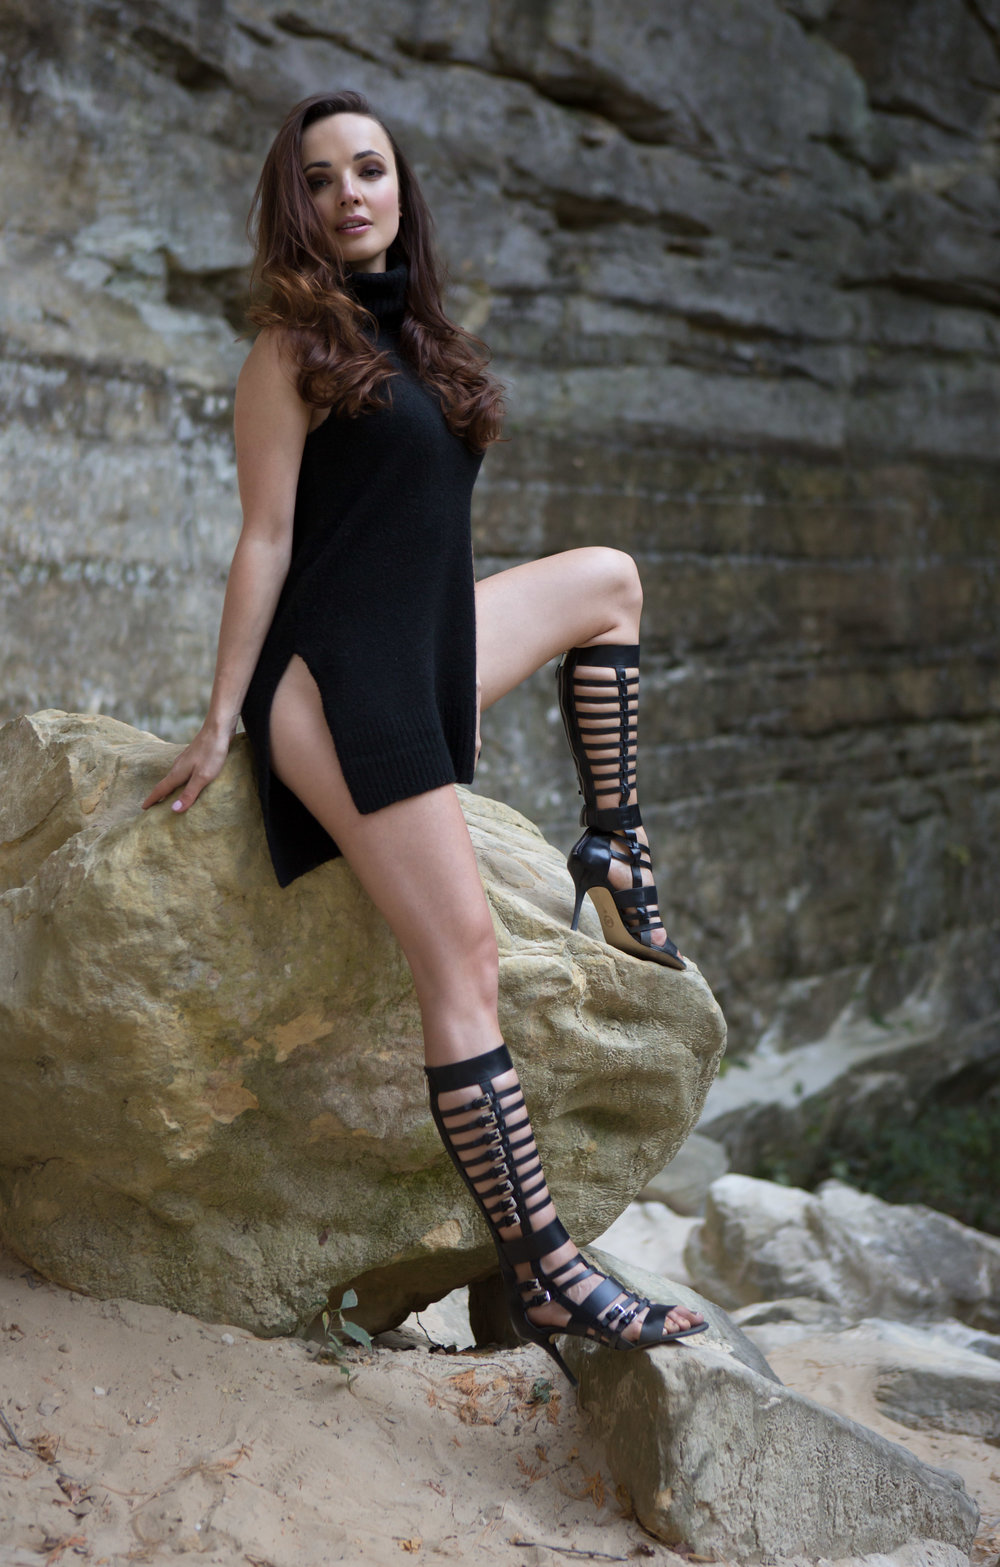 Natalli sitting on rock for web -4387-Edit.jpg